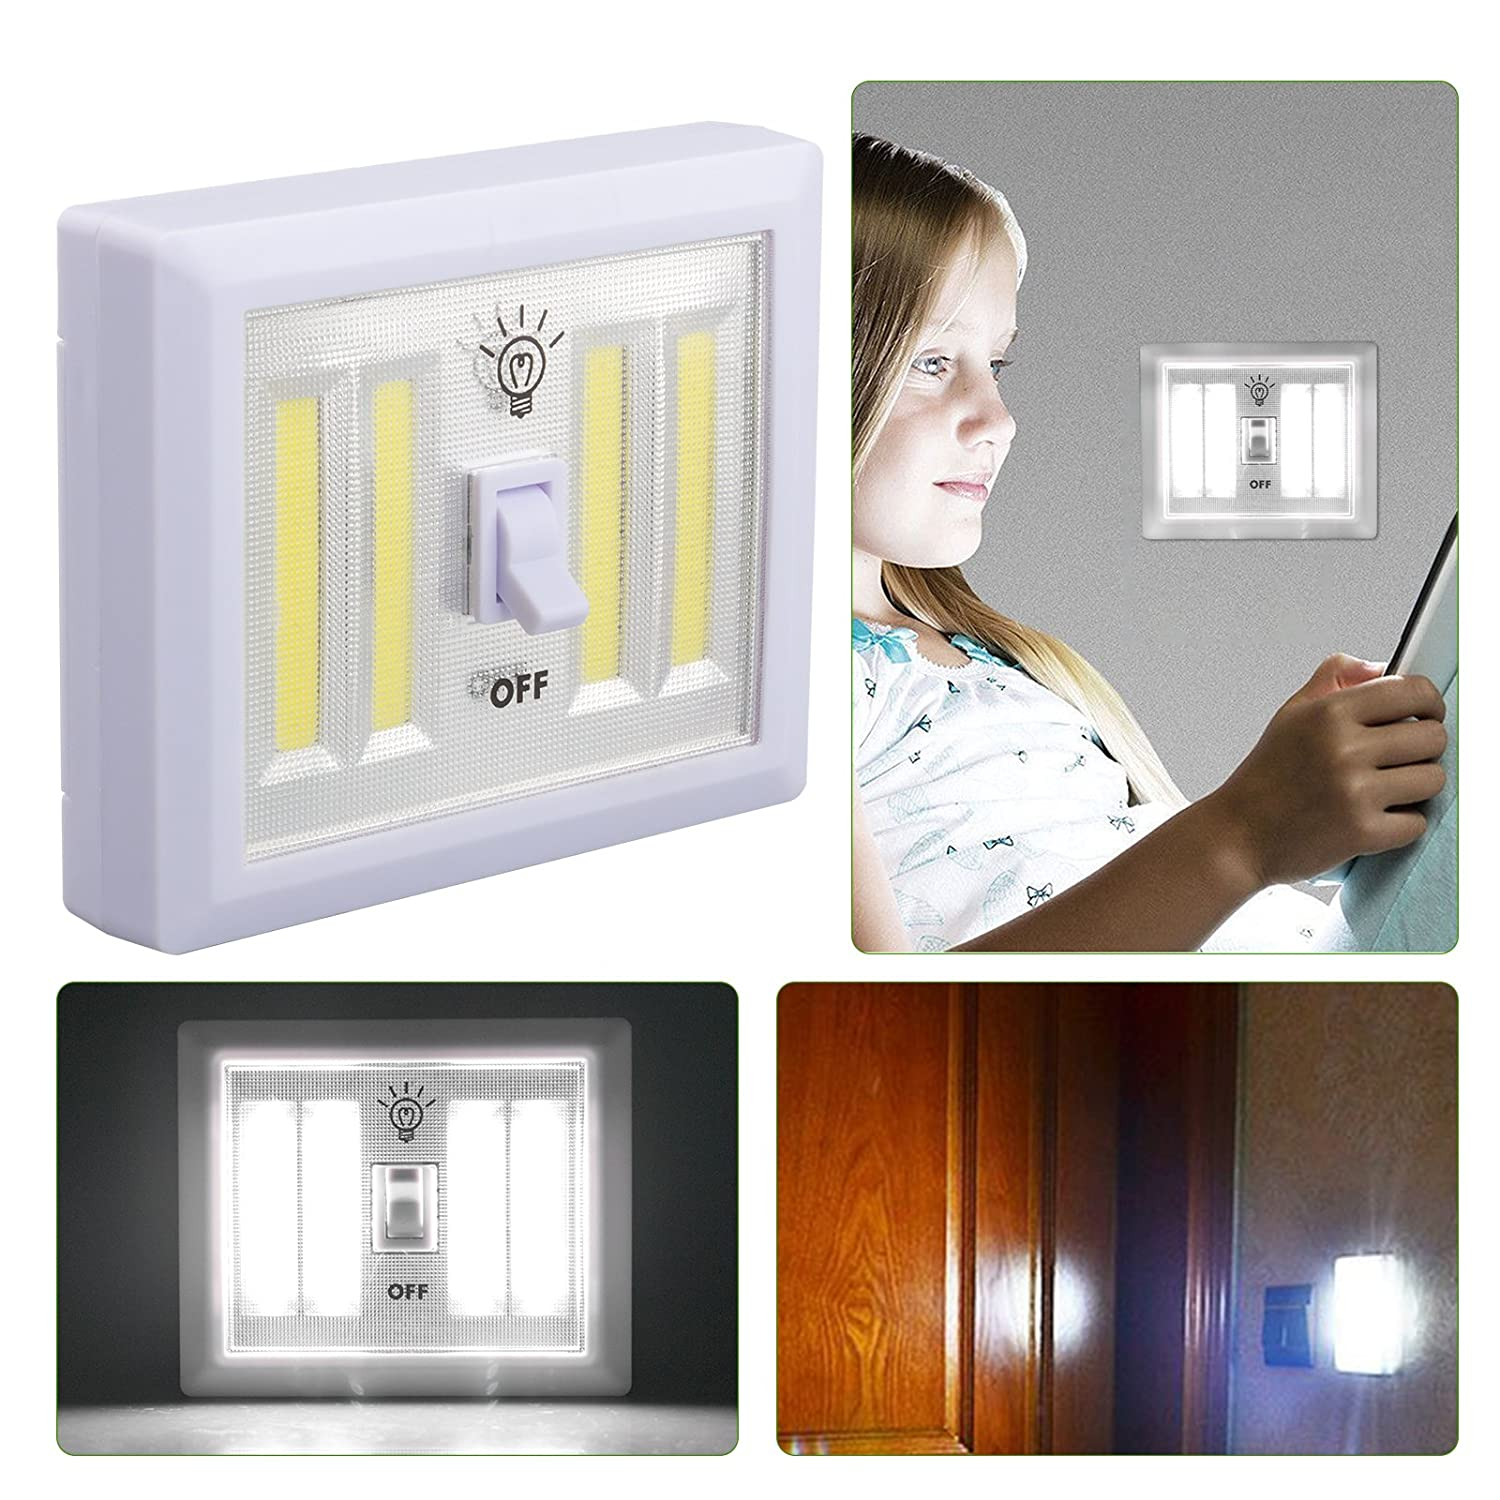 Linkstyle Cob Led Wall Lighted Switch Wireless Closet Night Light